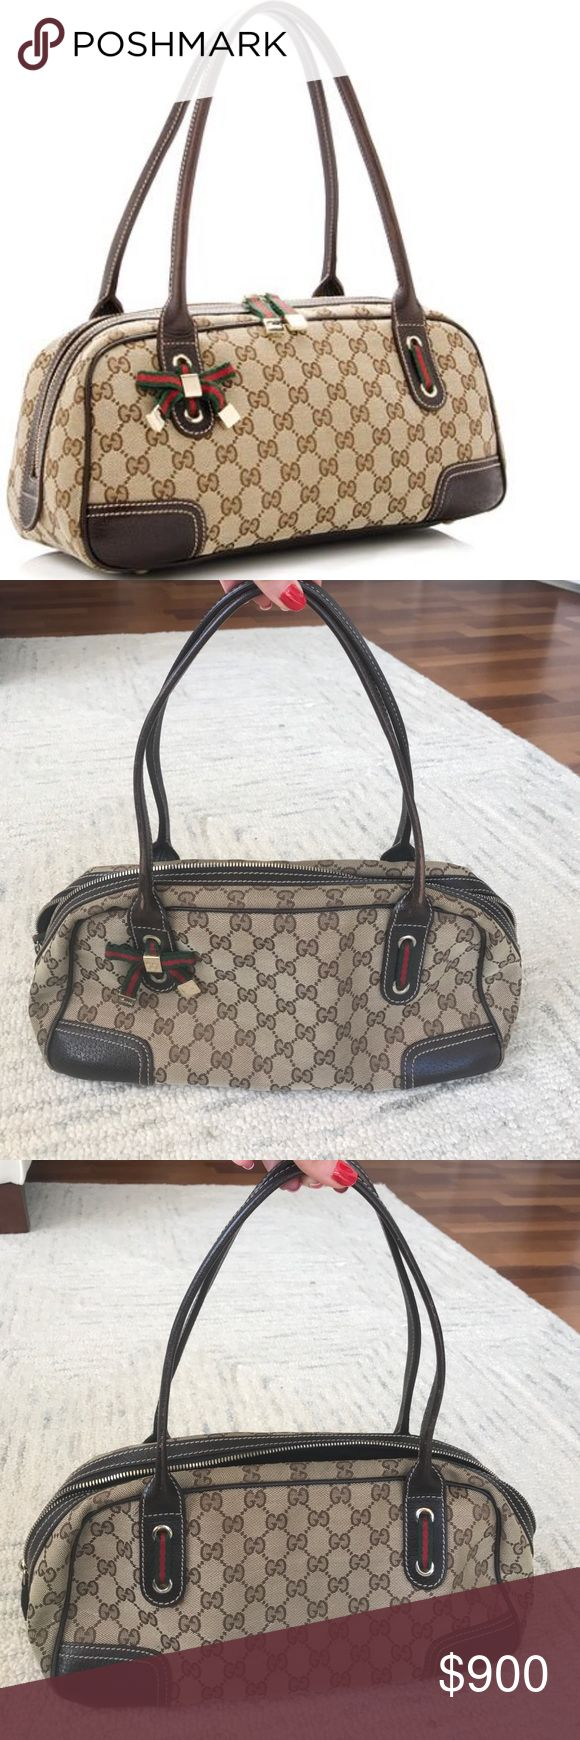 """Gucci Princy Boston Handbag This authentic classic Gucci Princy Boston Bag is in excellent condition. It is made from signature brown GG canvas trimmed in tonal leather and accented with small web stripes and gold-tone hardware.  Medium Width 13.5"""" Height 7.0"""" Depth 5.25"""" Handle Drop 7.5"""" Gucci Bags"""